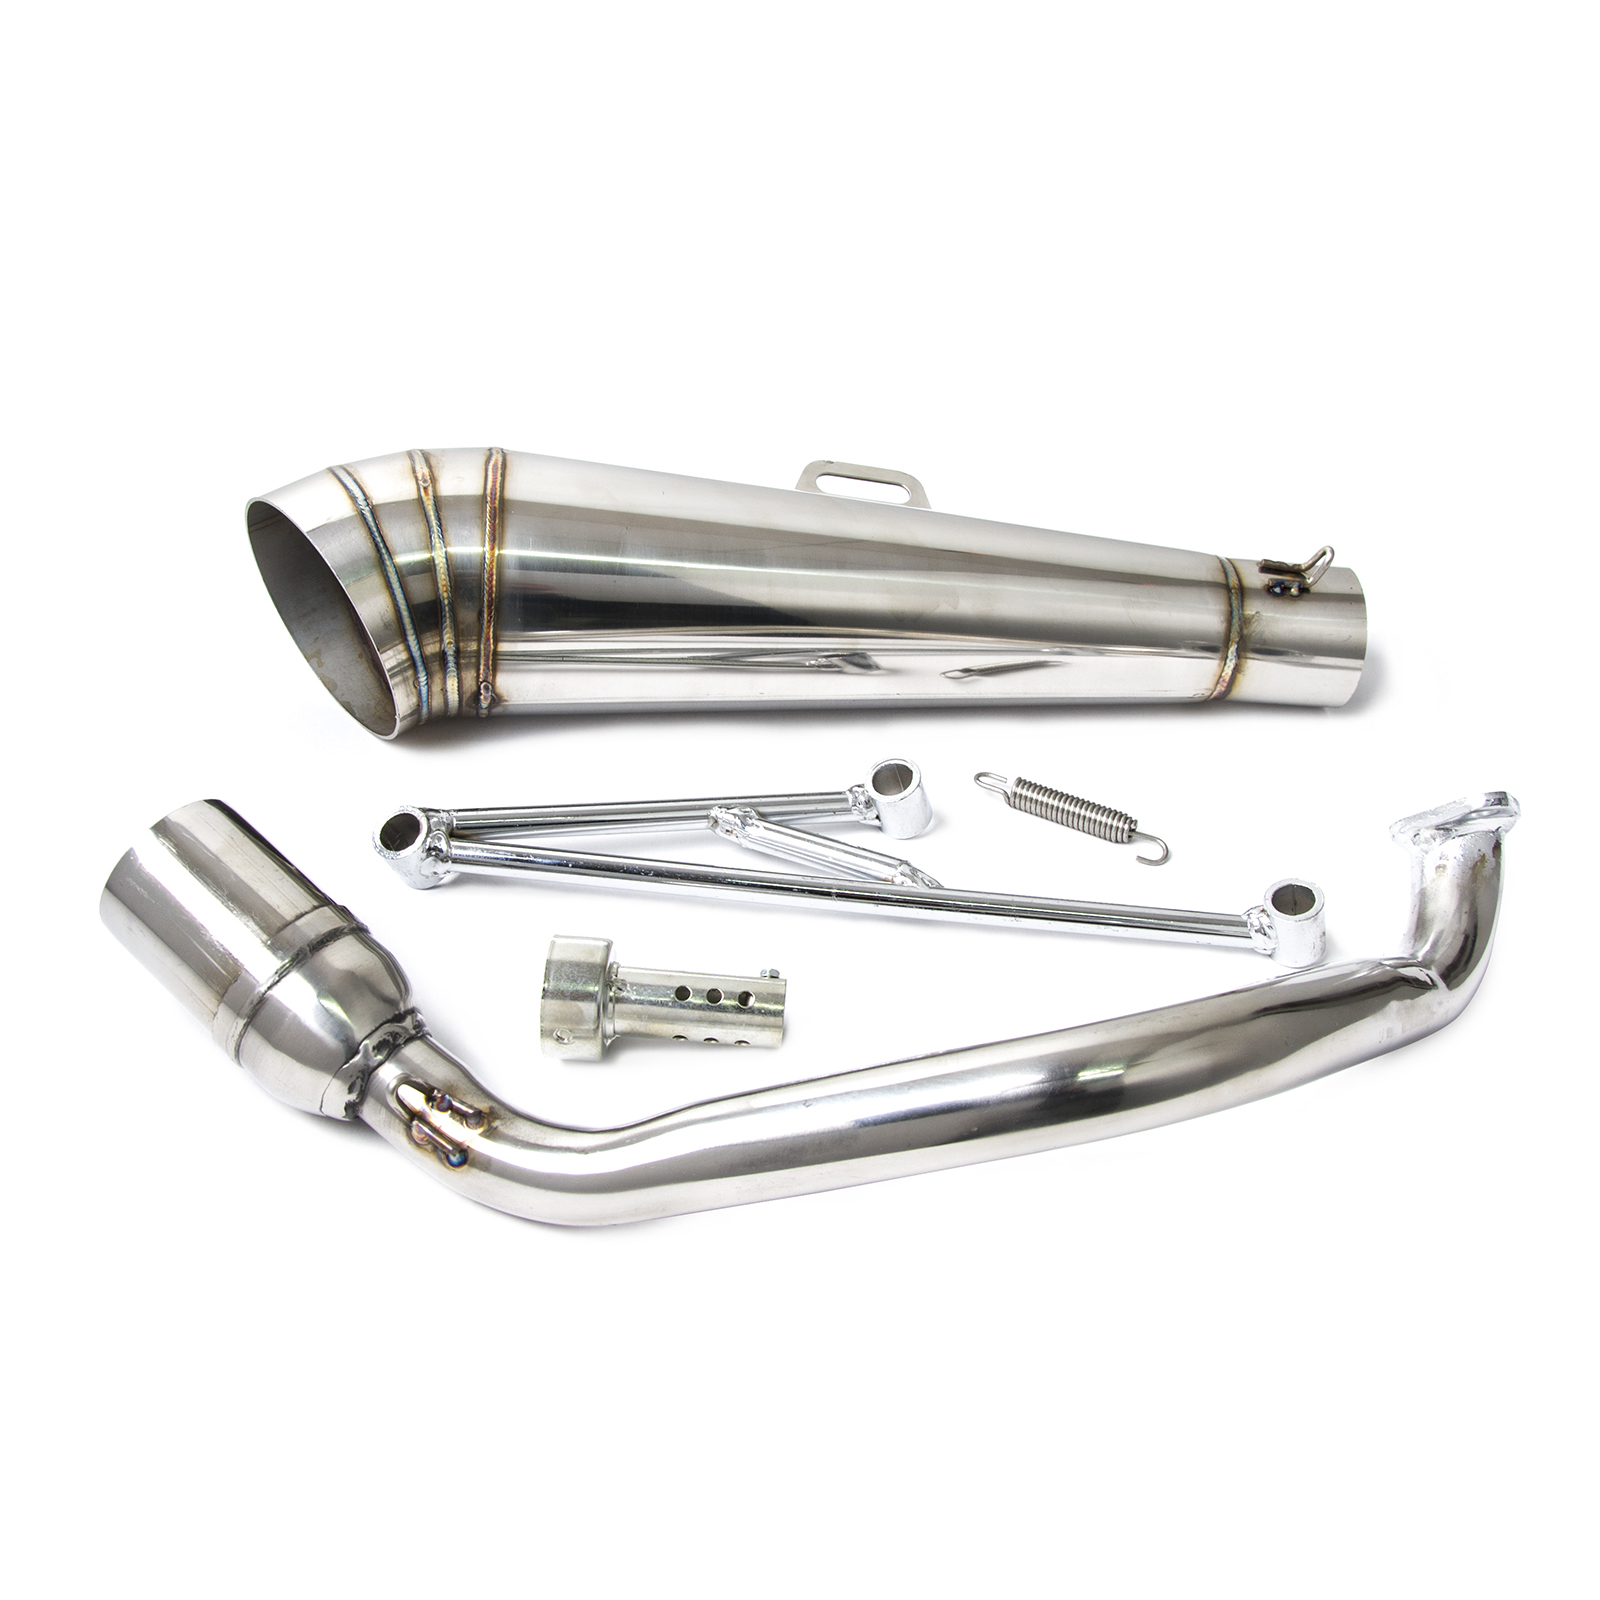 Exhaust Muffler Pipe For Honda Ruckus Zoomer With Gy6